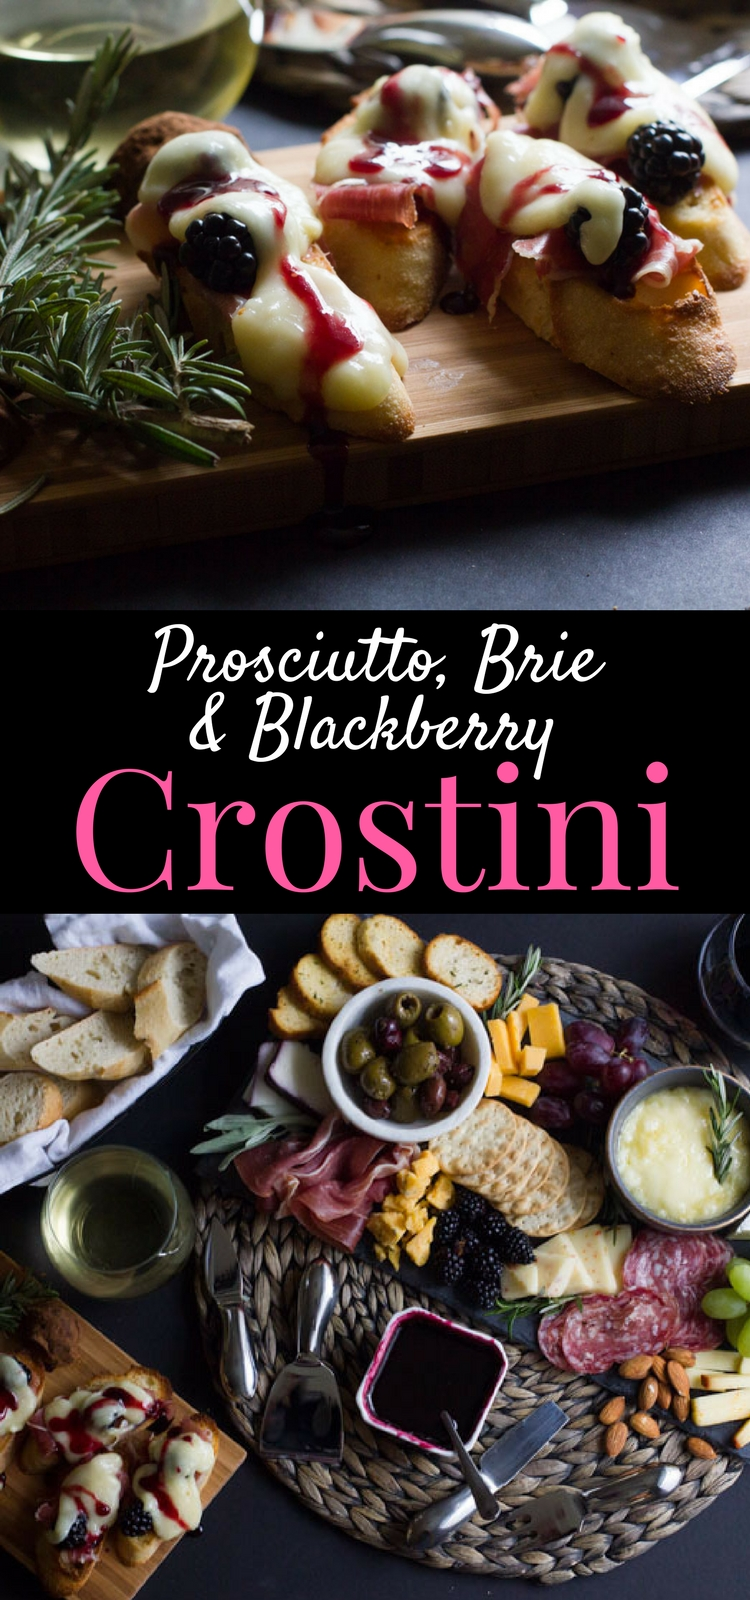 Prosciutto, Brie and Blackberry Crostini is a fast, simple and easy appetizer that's perfect for parties and a quiet dinner alike. #ad